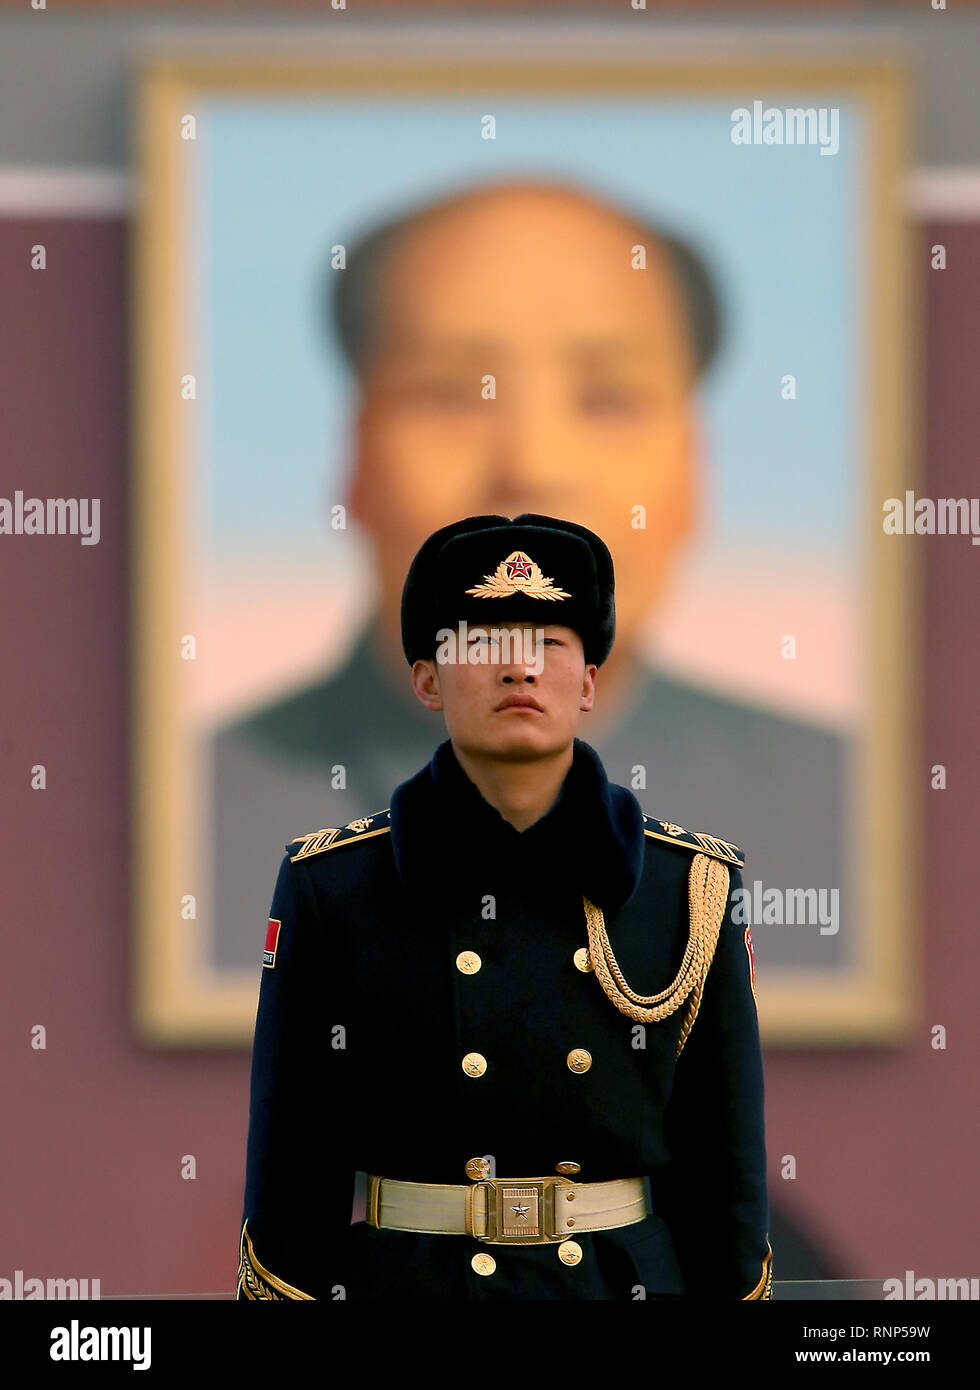 Beijing, China. 5th Mar, 2018. A Chinese soldier stands guard in Tiananmen Square in front of a giant portrait of former helmsman Mao Zedong as the annual National People's Congress opens in Beijing on March 5, 2018. China's largely ceremonial parliament opened Monday, with over 3,000 delegates poised to endorse controversial measures that will allow Chinese President Xi Jinping to rule indefinitely. Credit: Todd Lee/ZUMA Wire/ZUMAPRESS.com/Alamy Live News - Stock Image